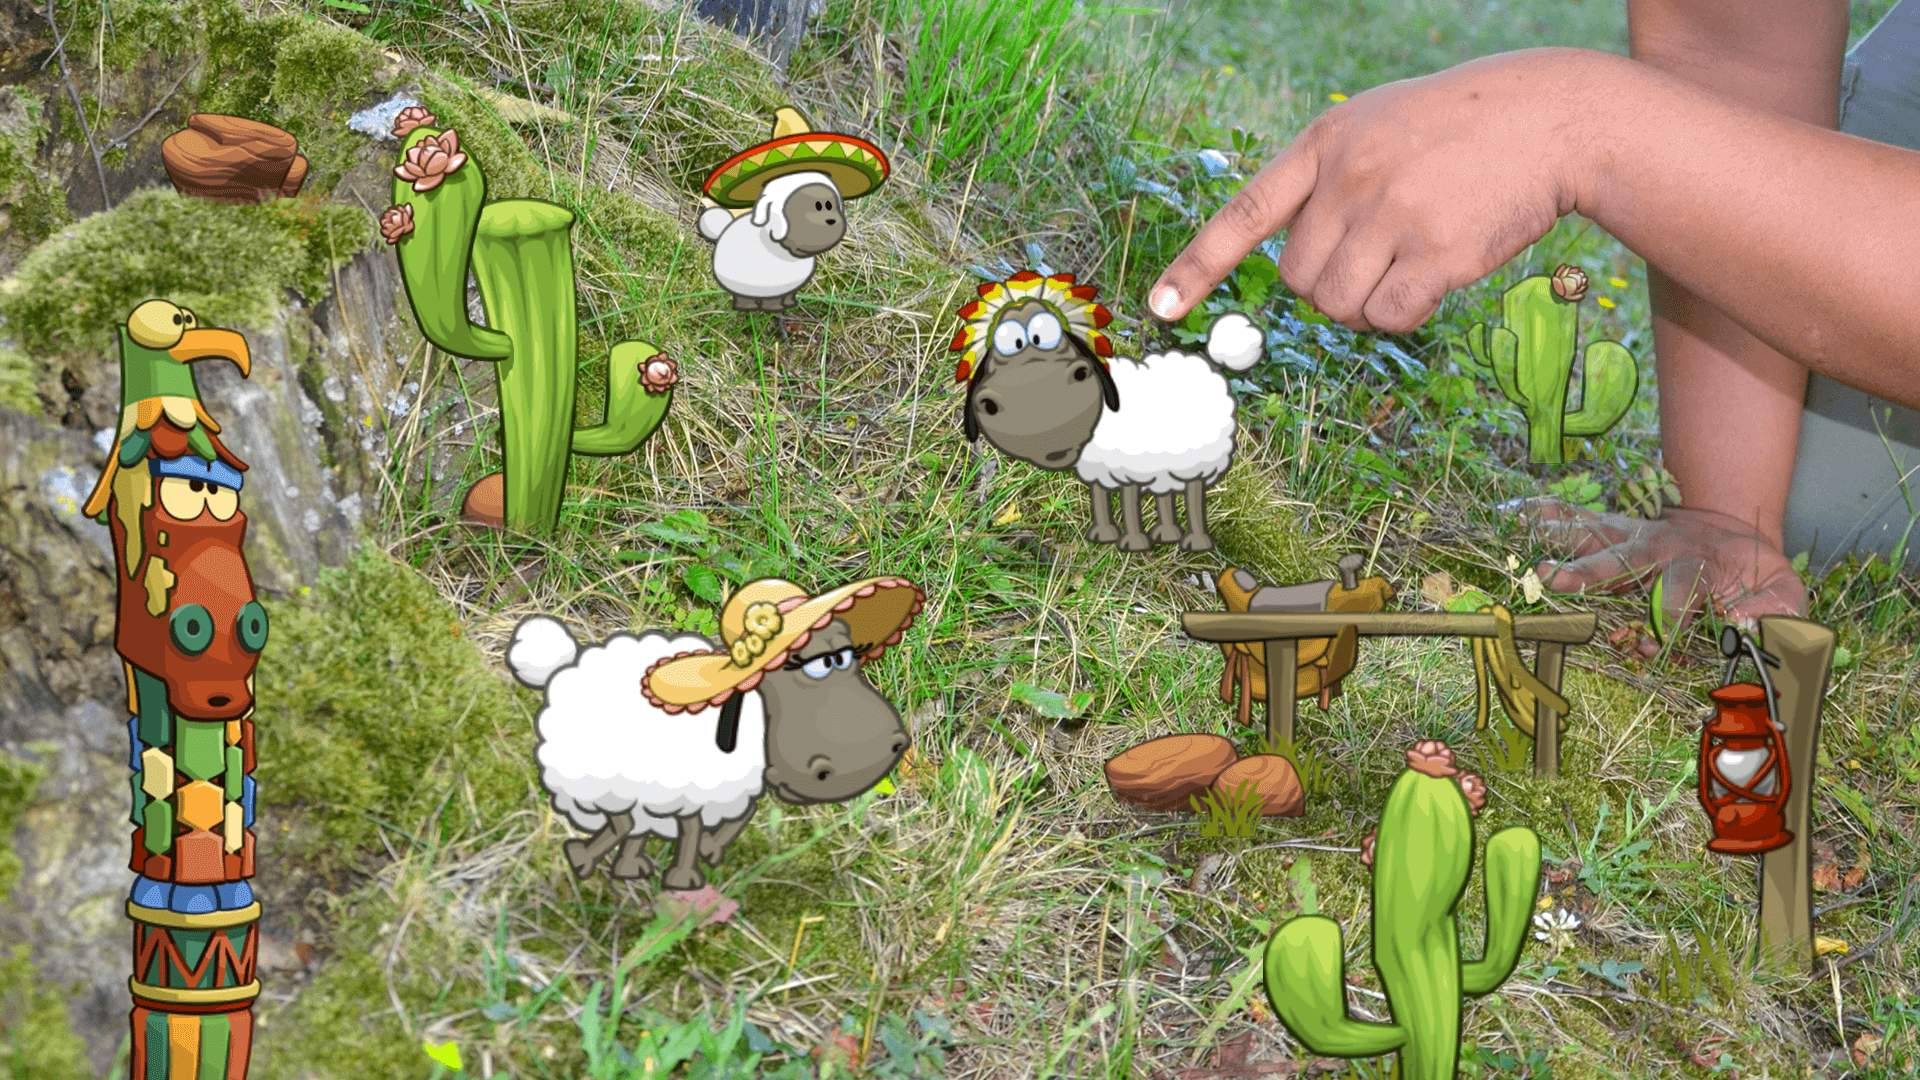 Clouds & Sheep AR Effects Screenshot 06